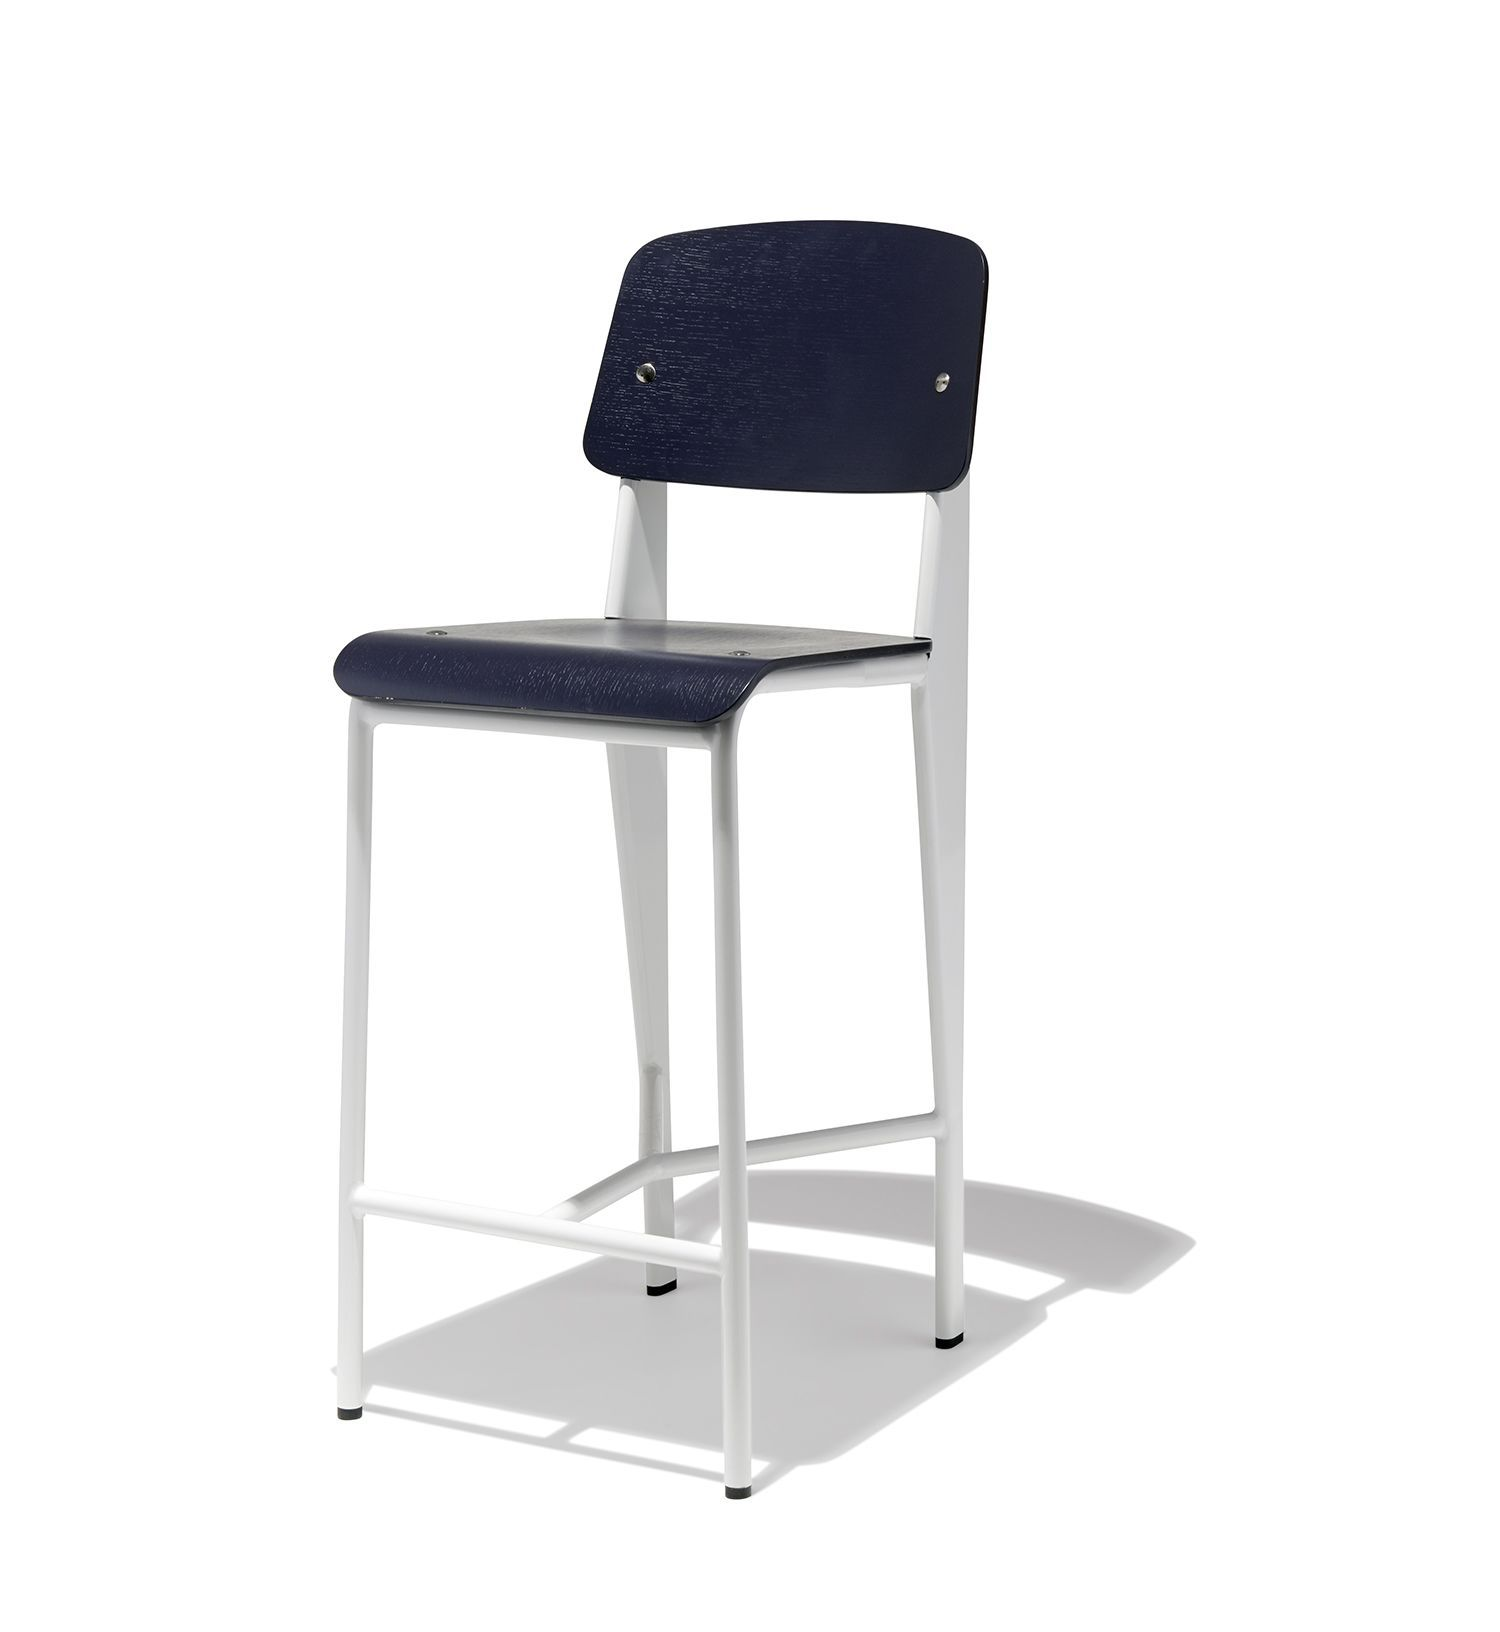 Phenomenal Prouve Counter Stool In 2019 Counter Stools Stool Counter Ibusinesslaw Wood Chair Design Ideas Ibusinesslaworg